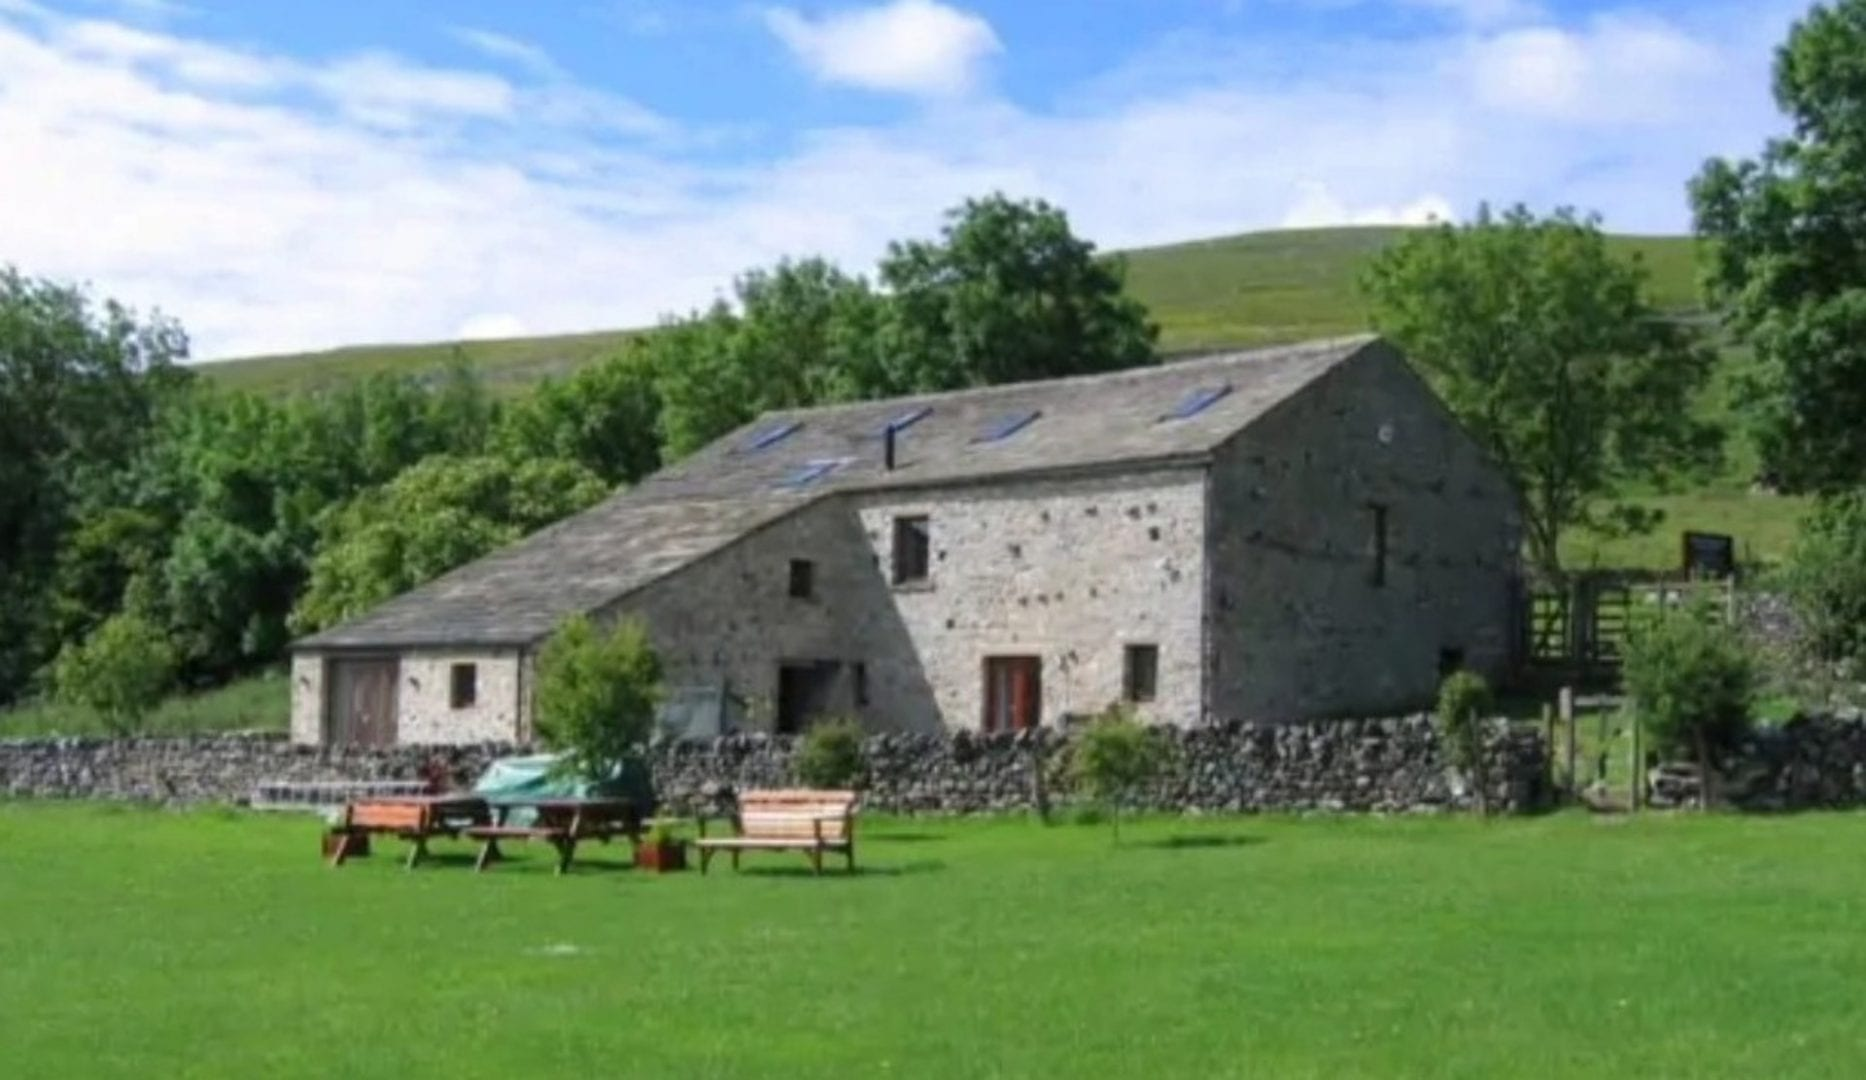 Wharfedale Lodge, Yorkshire Dales